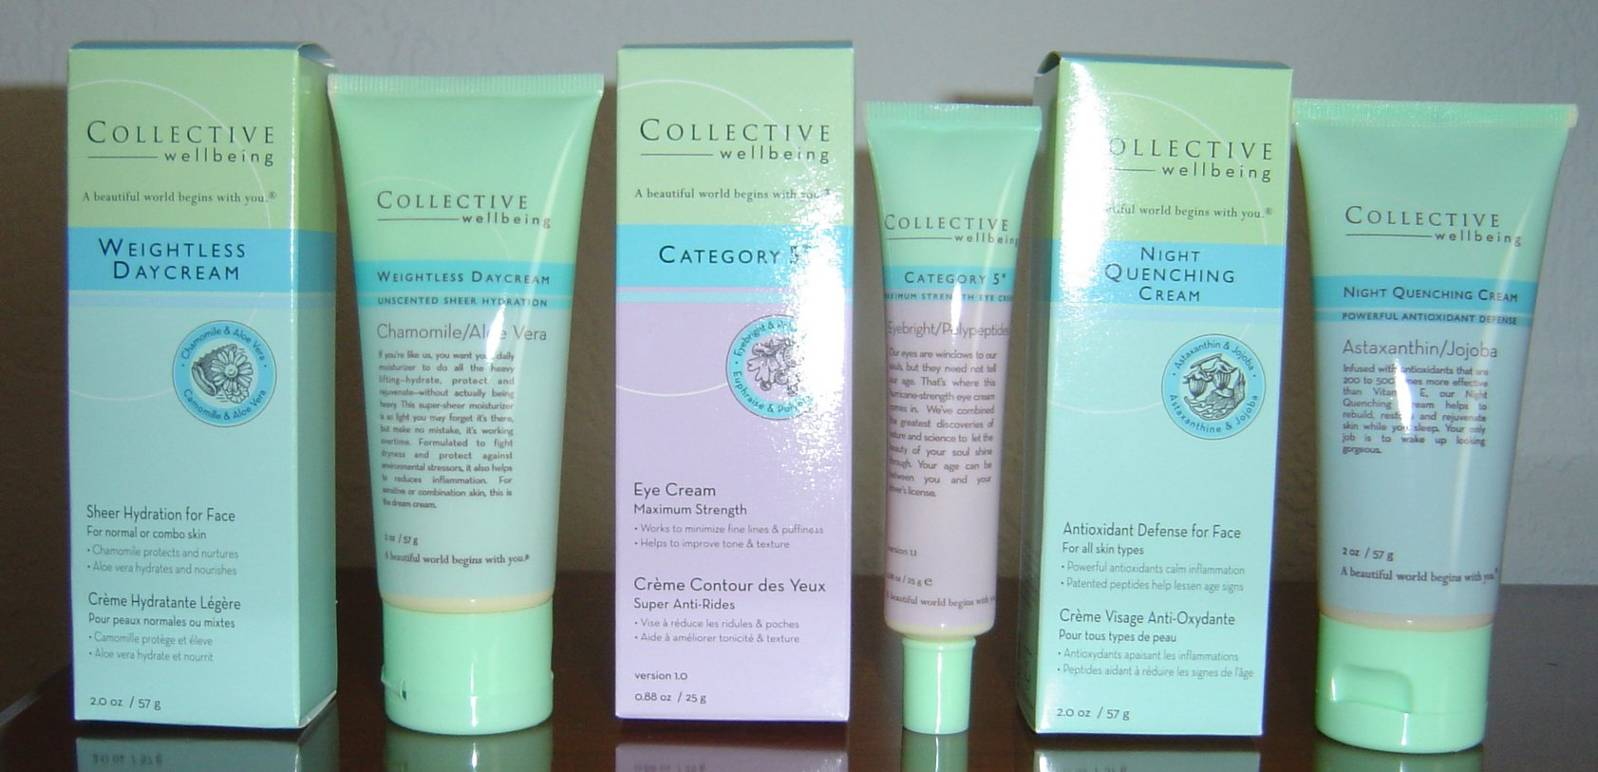 Collective Wellbeing Skin Care products